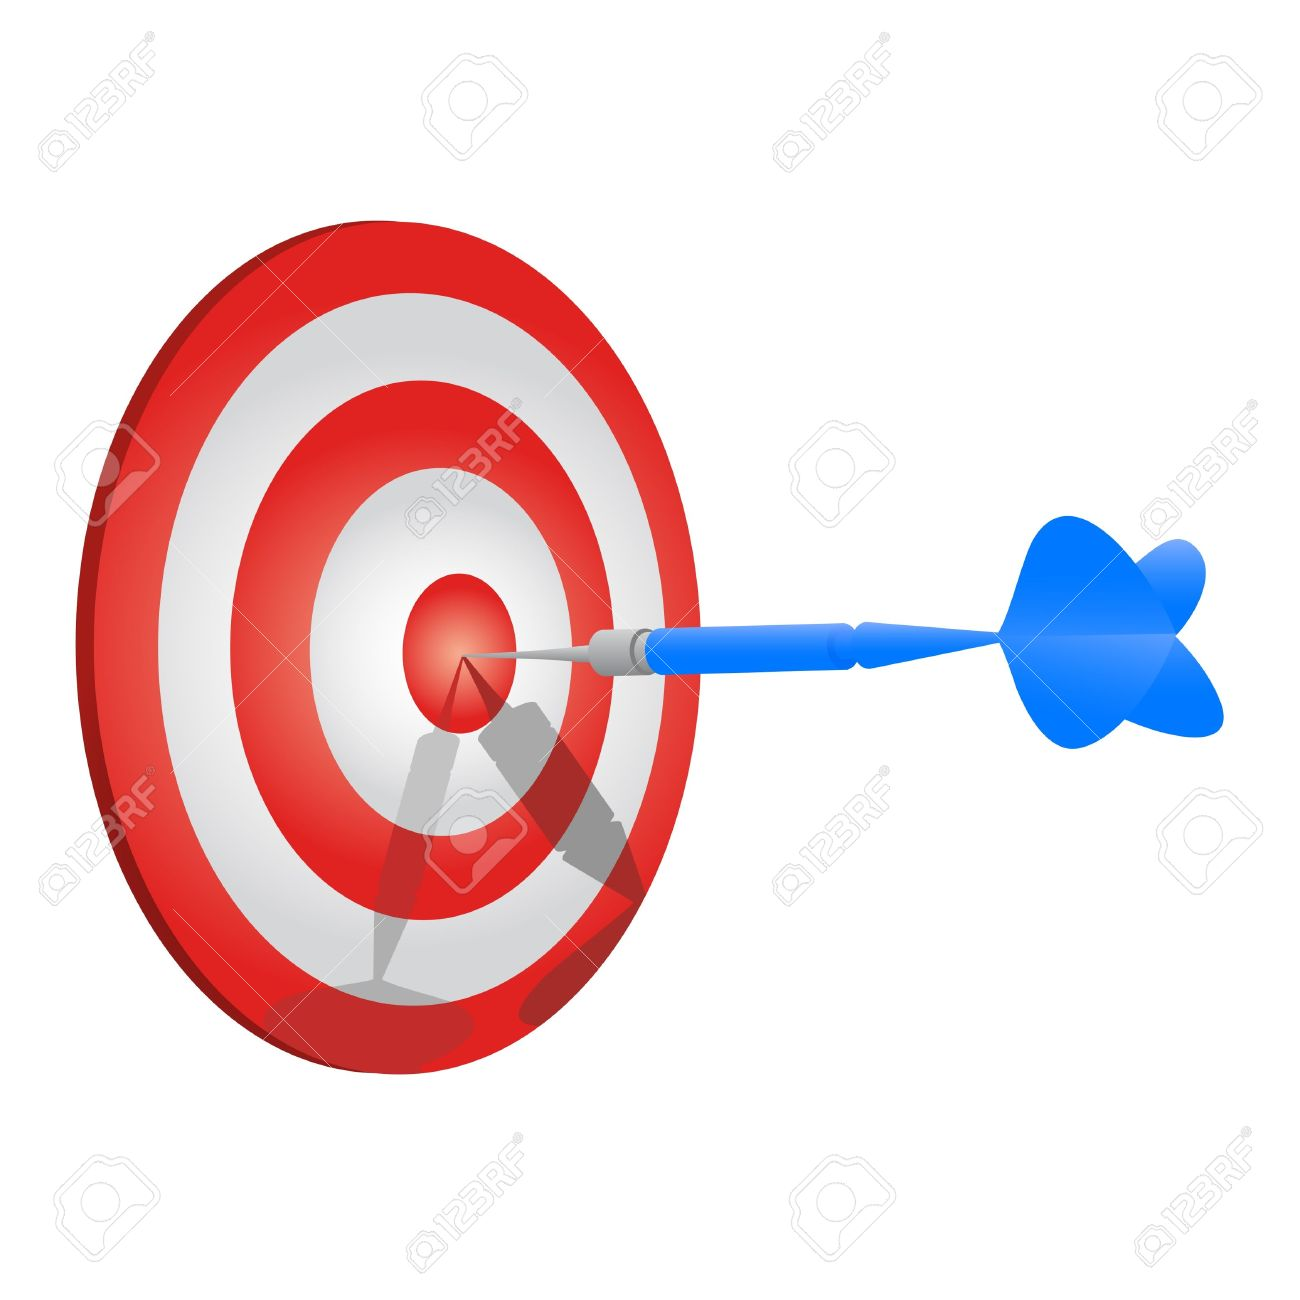 Gallery For > Target Objectives Clipart.